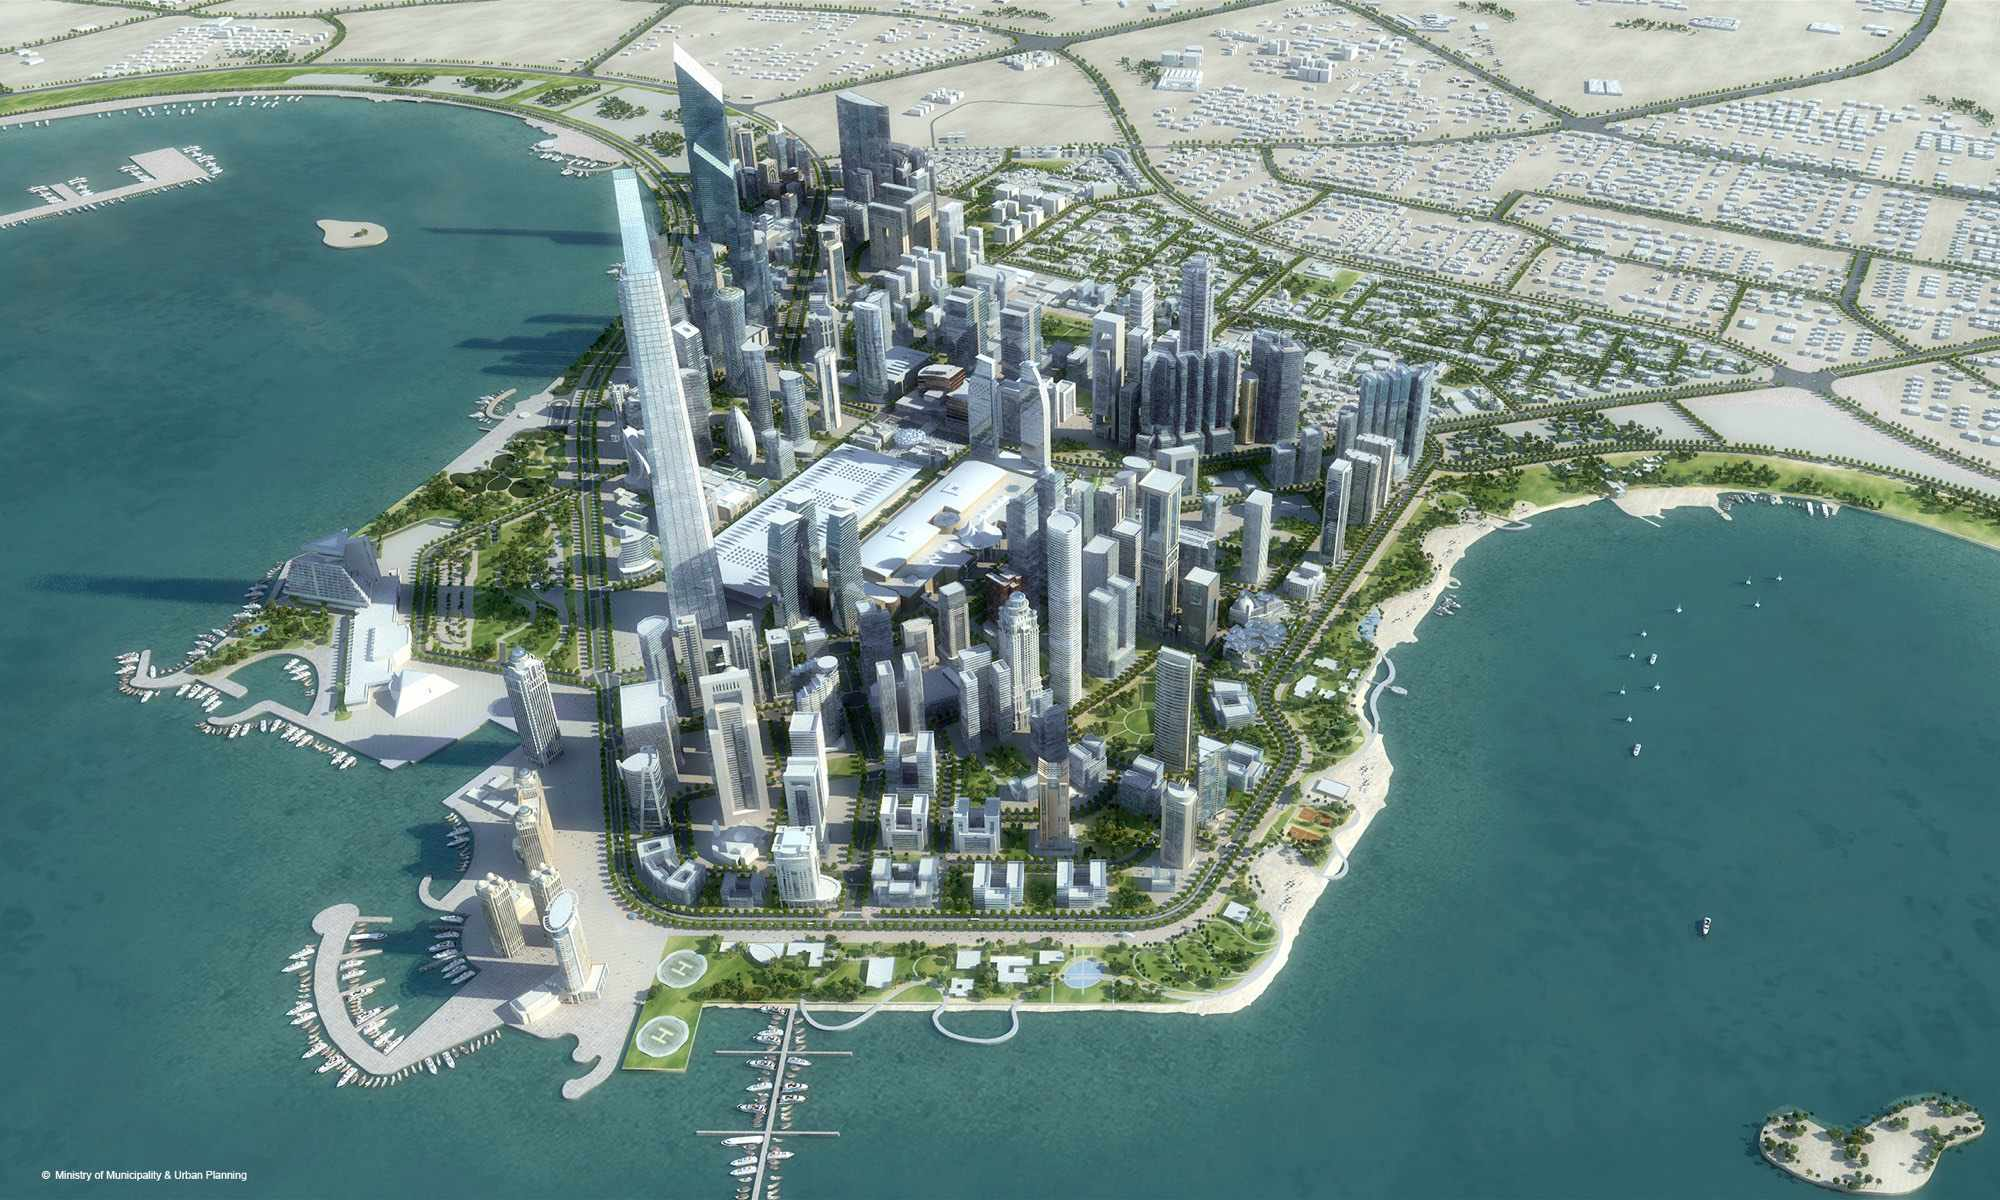 Qatar National Development Framework